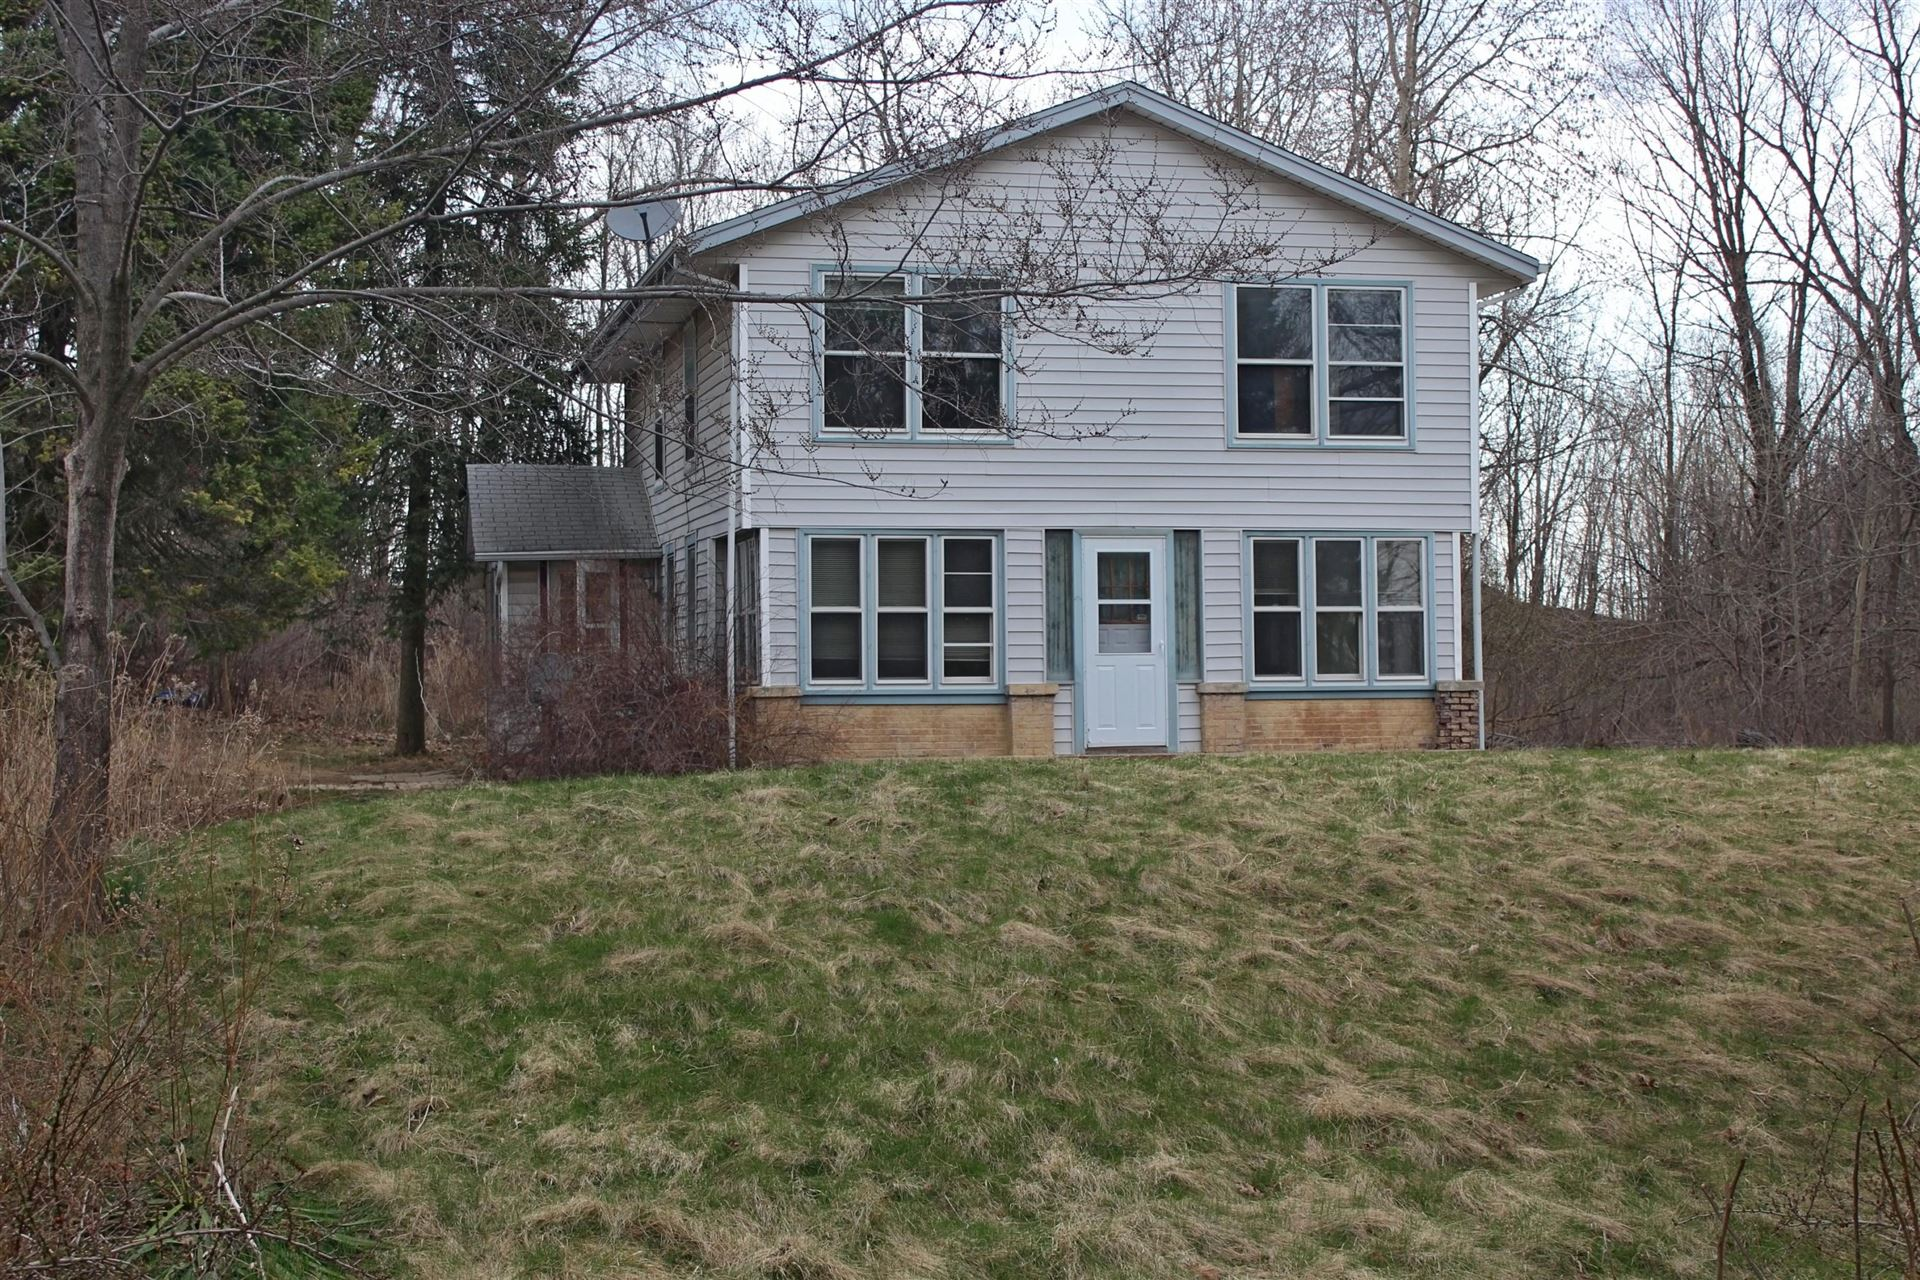 S66W20778 Tans Dr, Muskego, WI 53150 - MLS#: 1733758